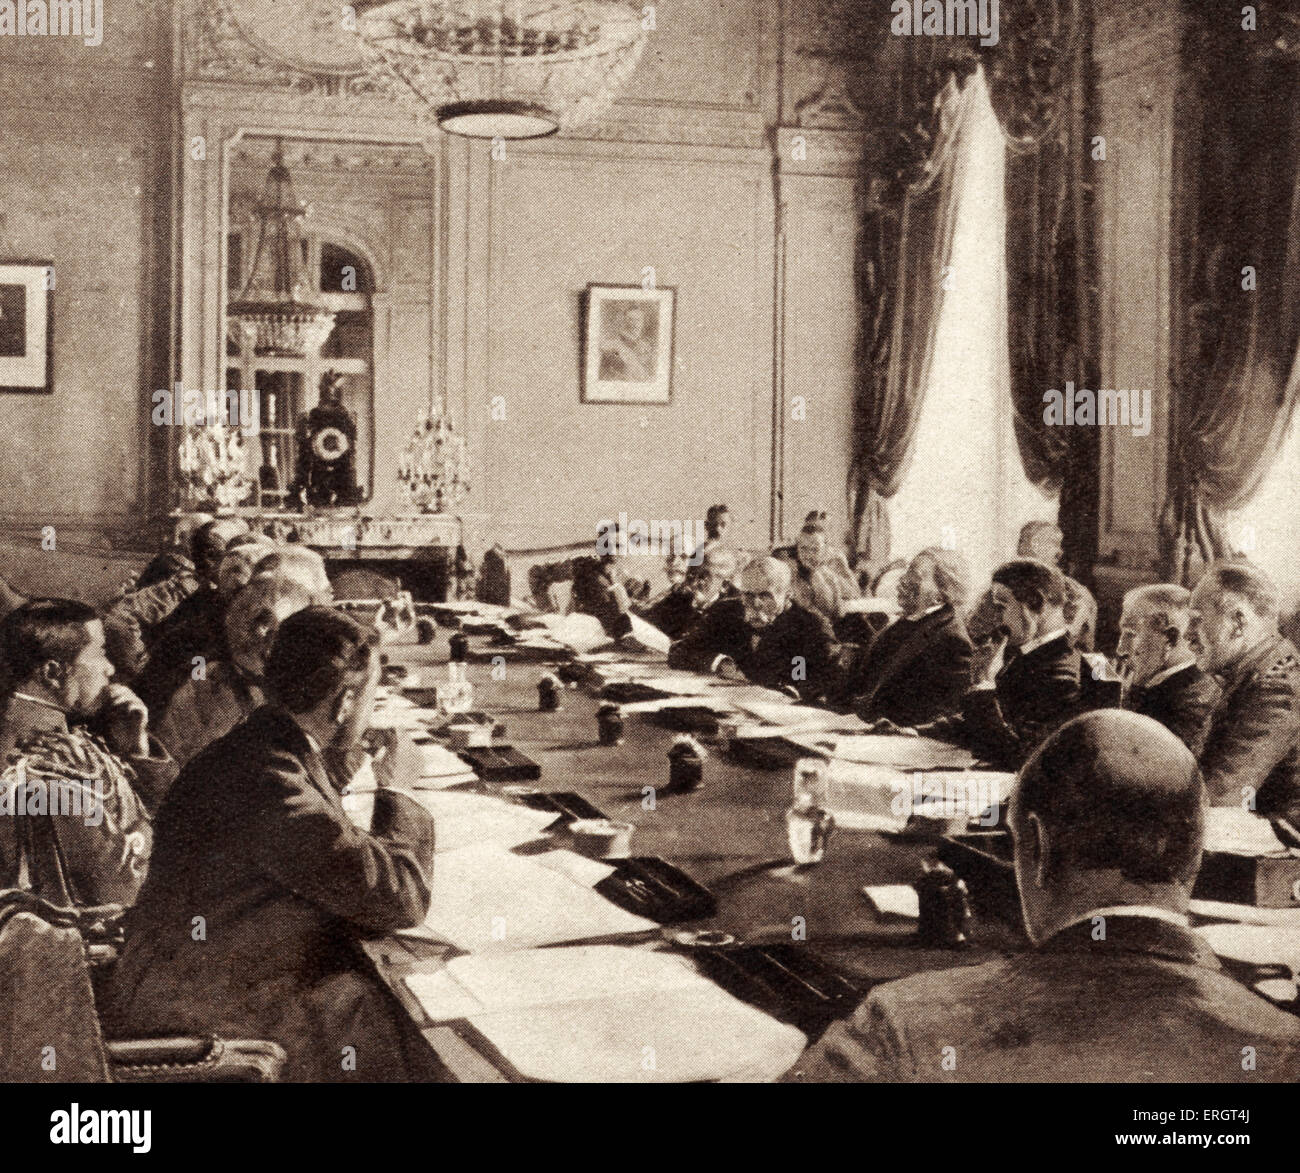 'The Armistice' - illustration of the inter-allied conference at Versailles where the treaty was signed - Stock Image